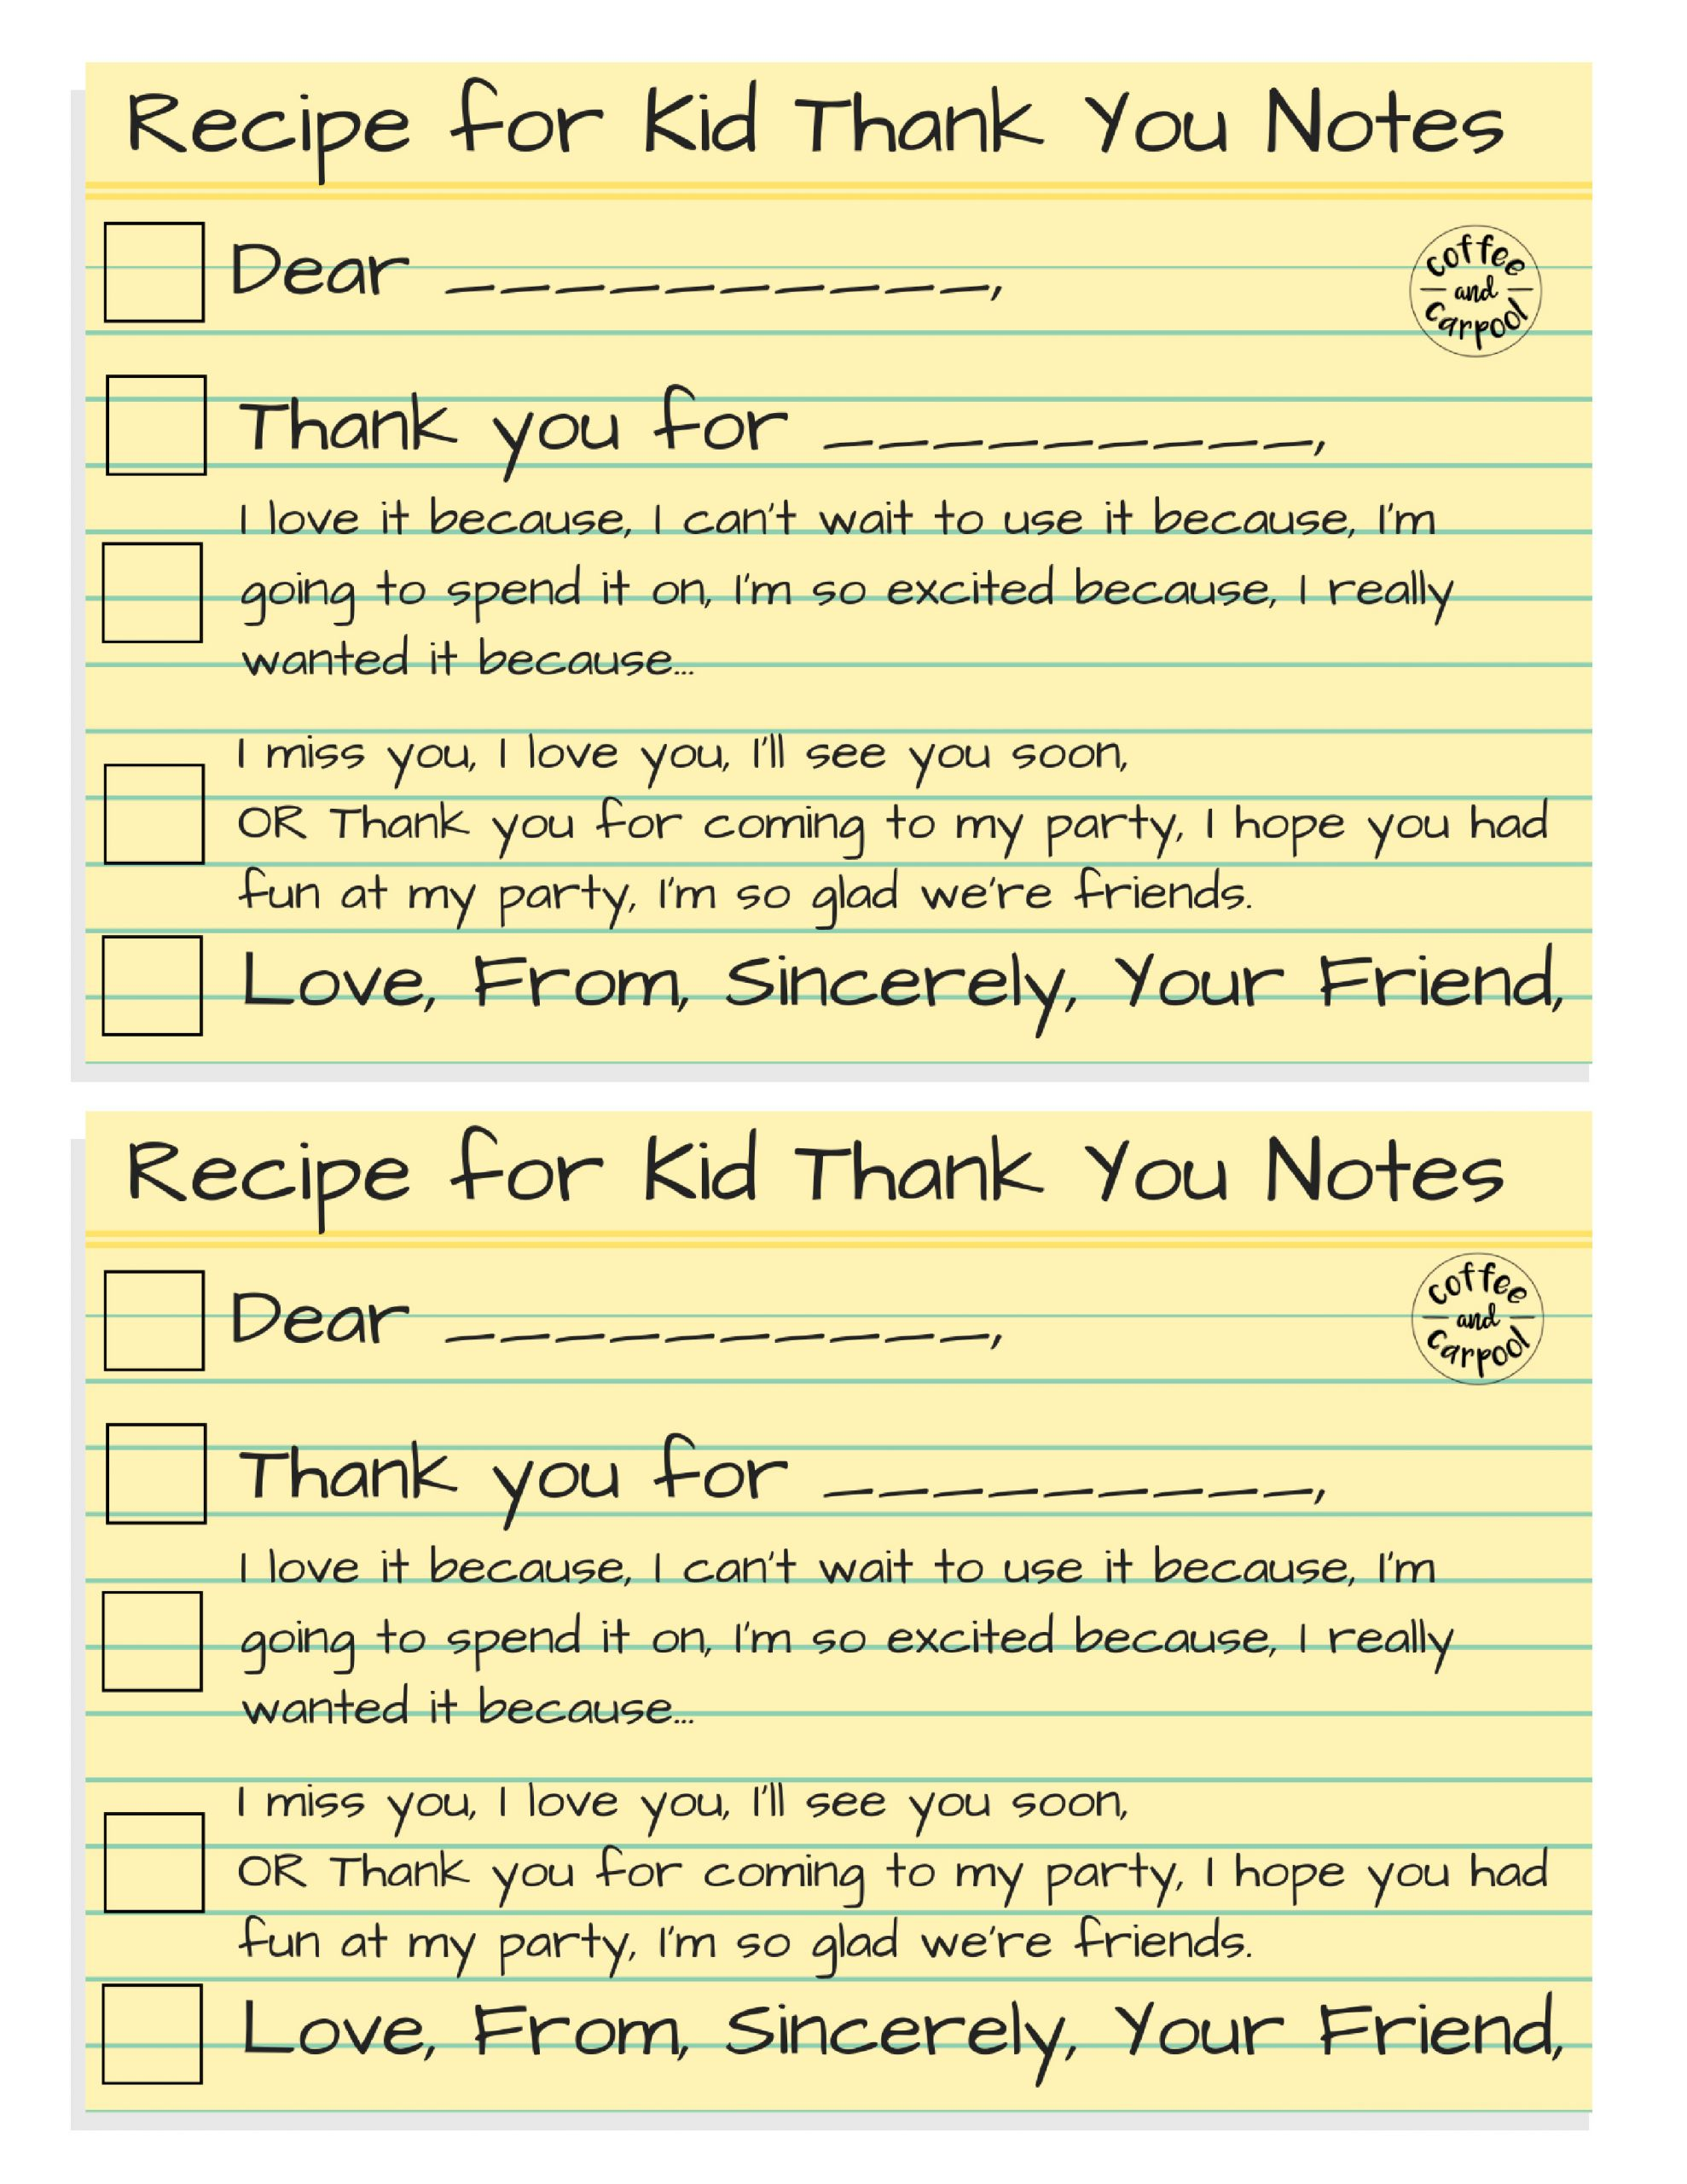 recipe for thank you notes png